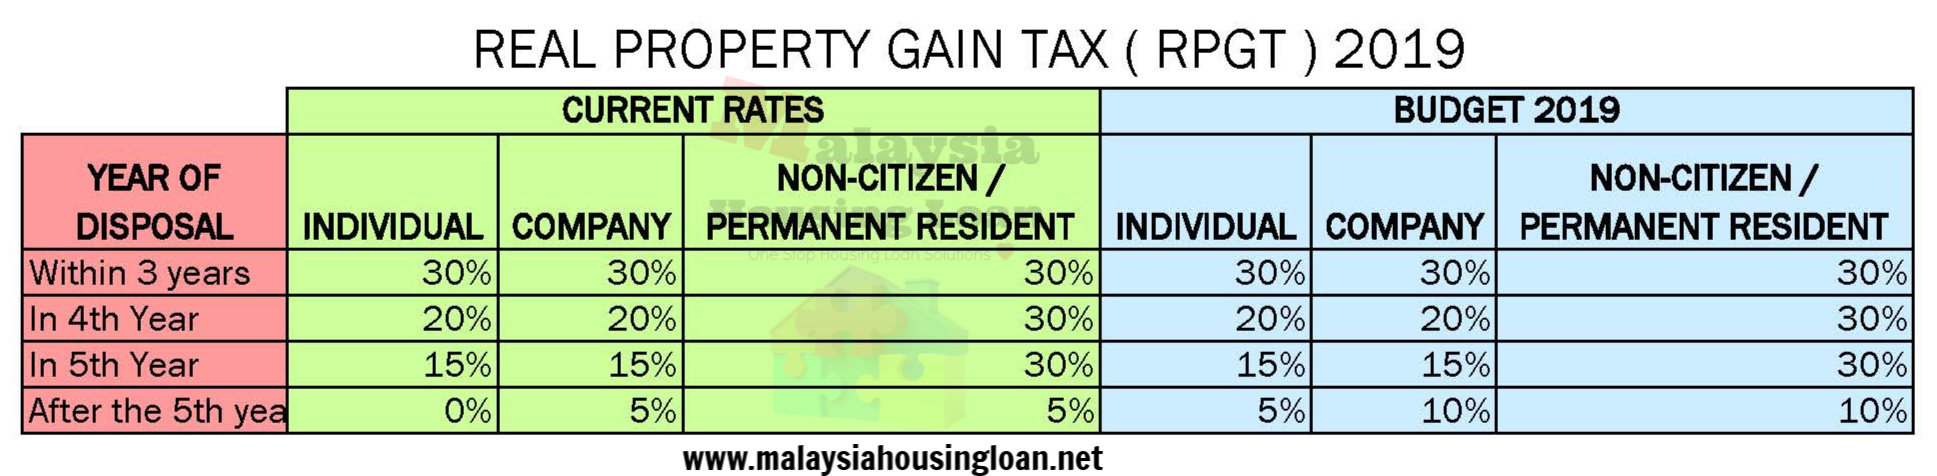 Taxation On Property Gain Income Tax Or Rpgt New Property Board